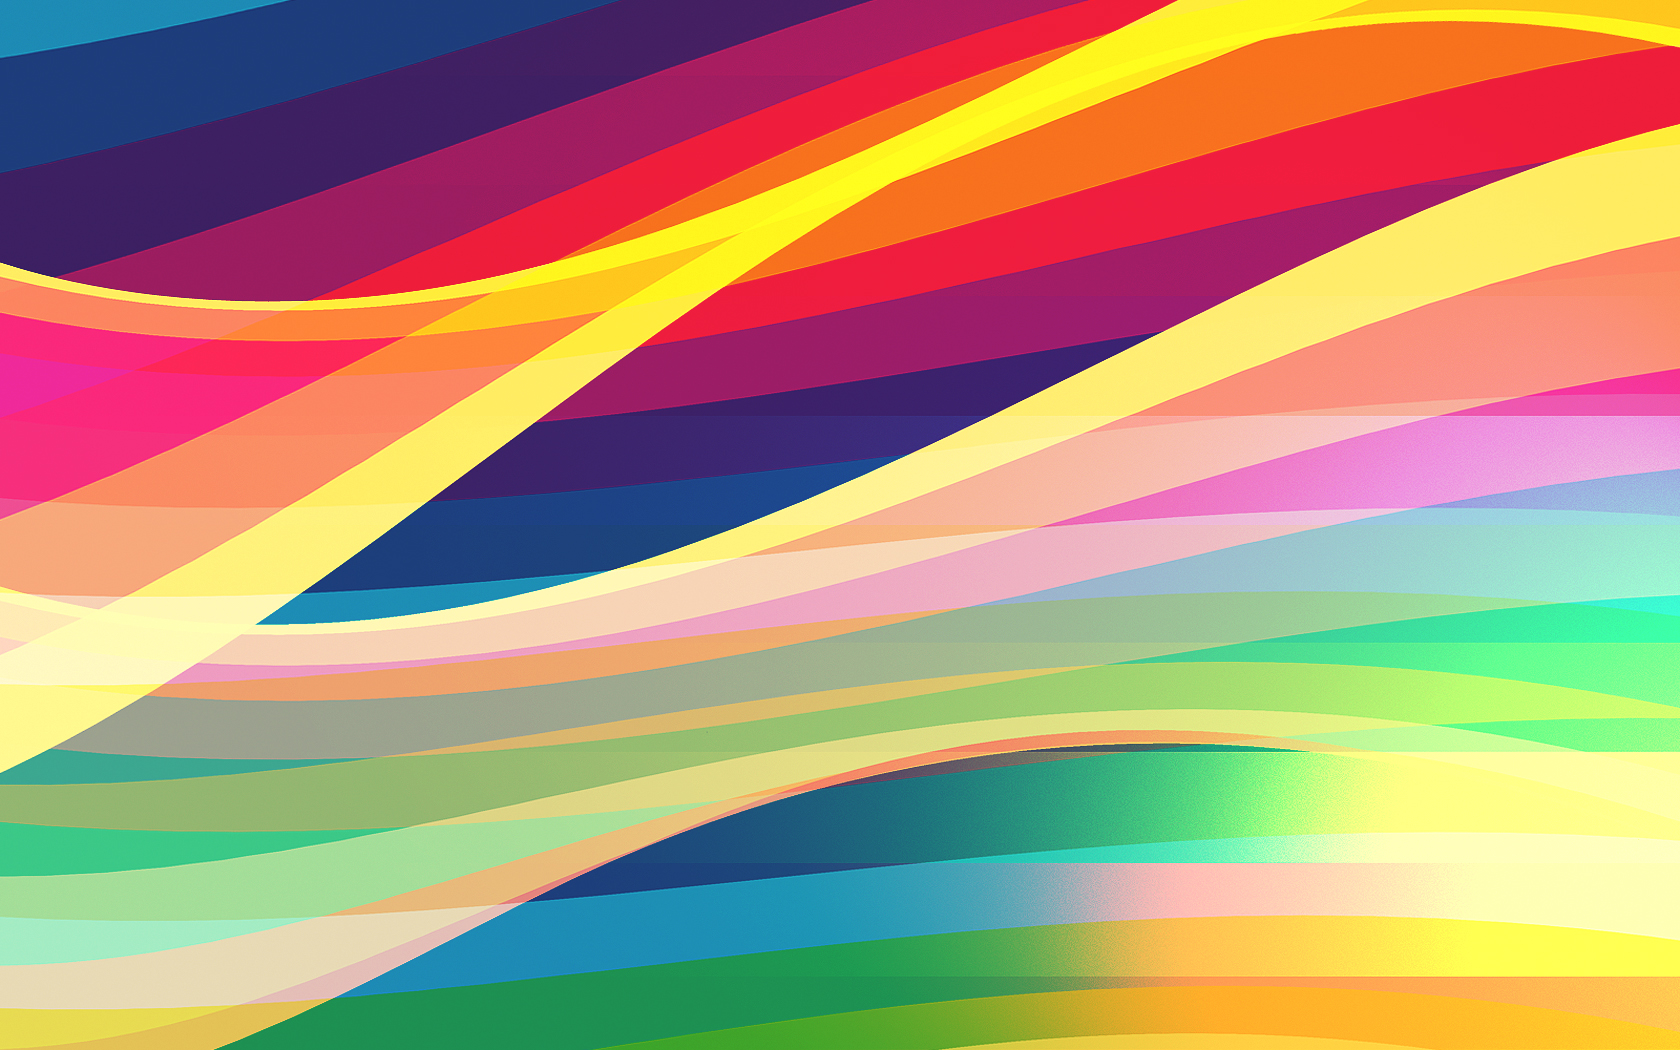 Abstract Colorful Wallpaper 1680x1050 Abstract Colorful 1680x1050